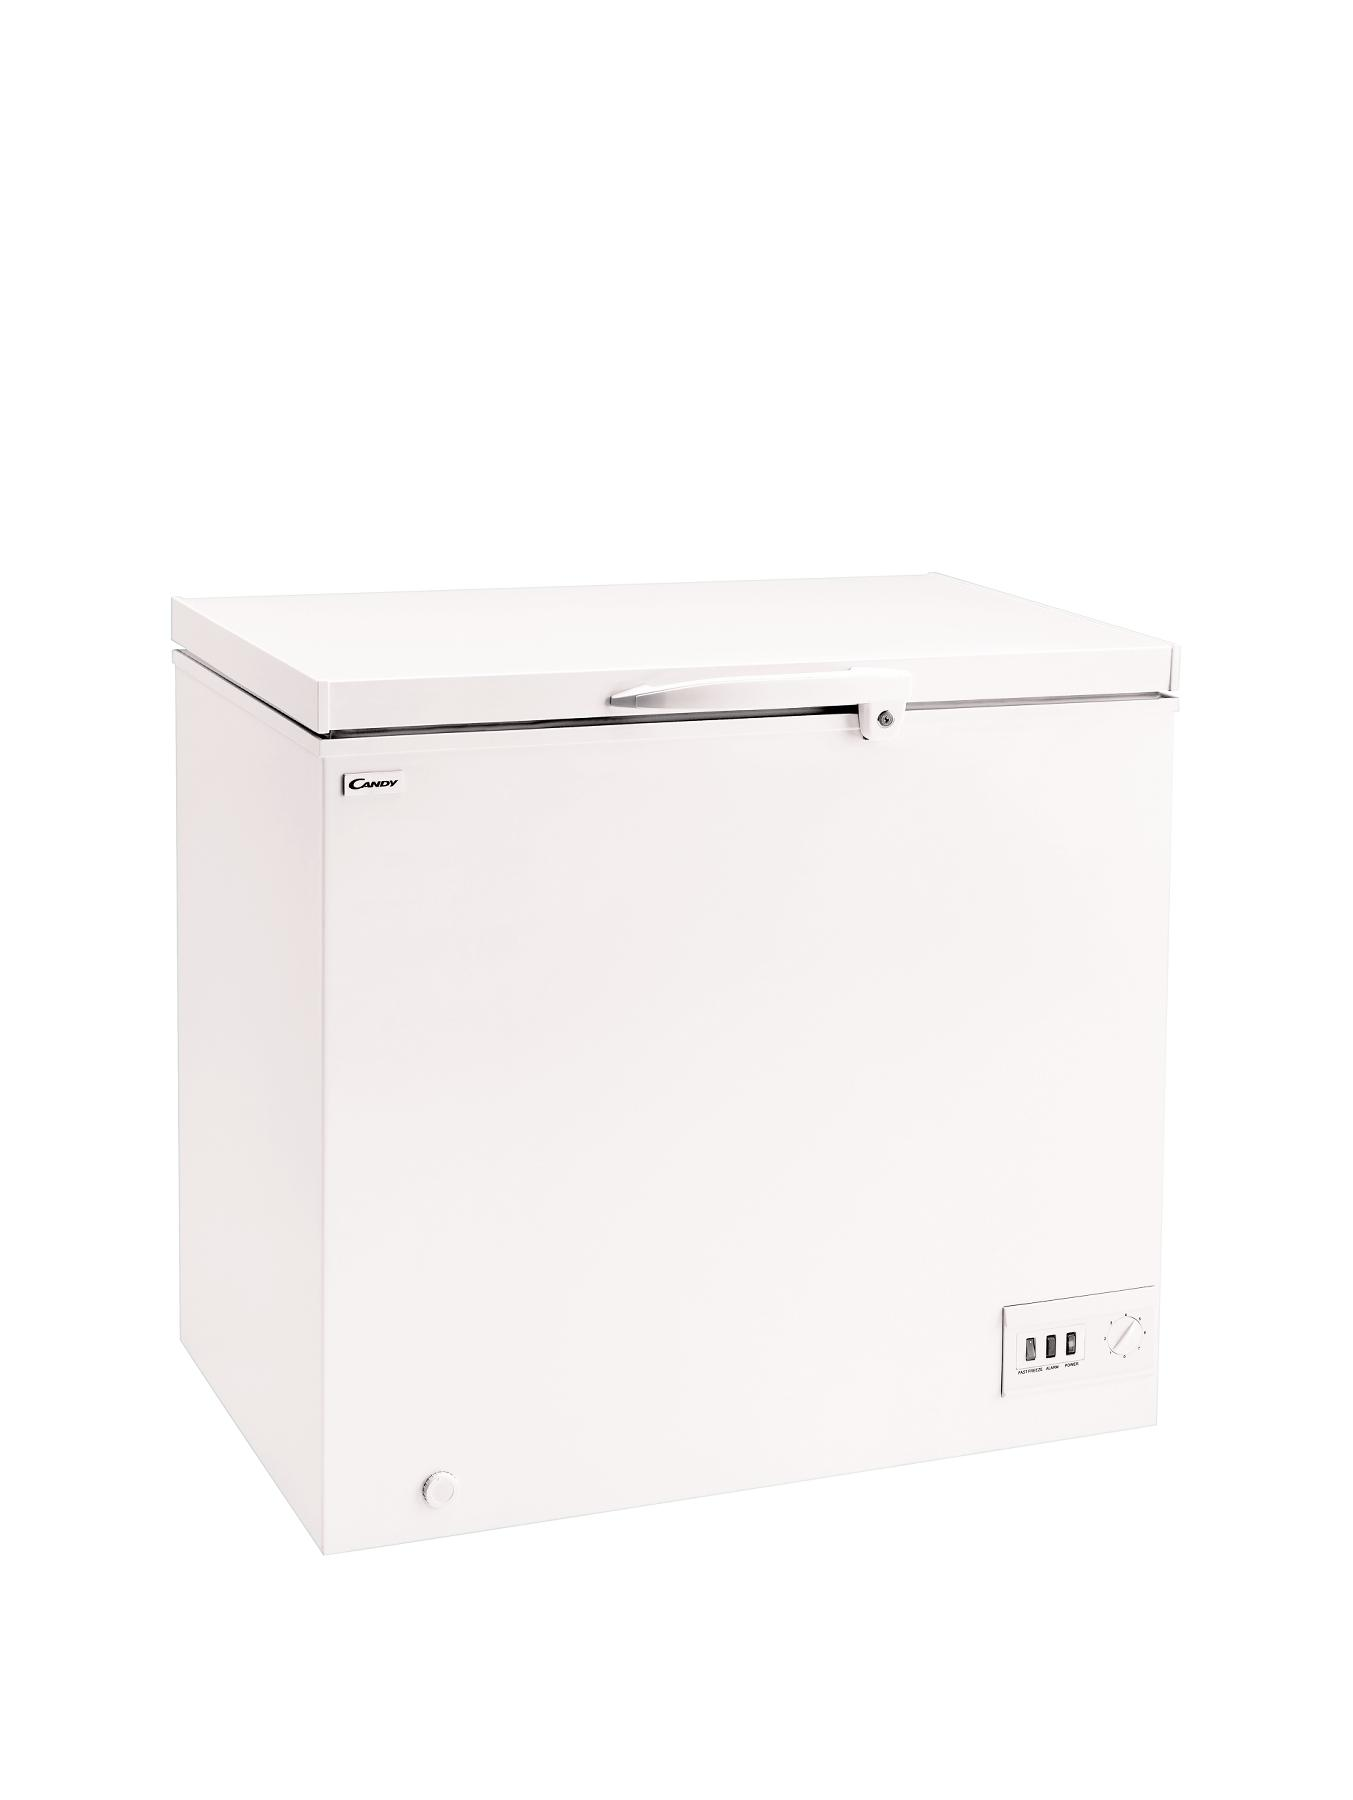 Buy Cheap Chest Freeze Compare Freezers Prices For Best